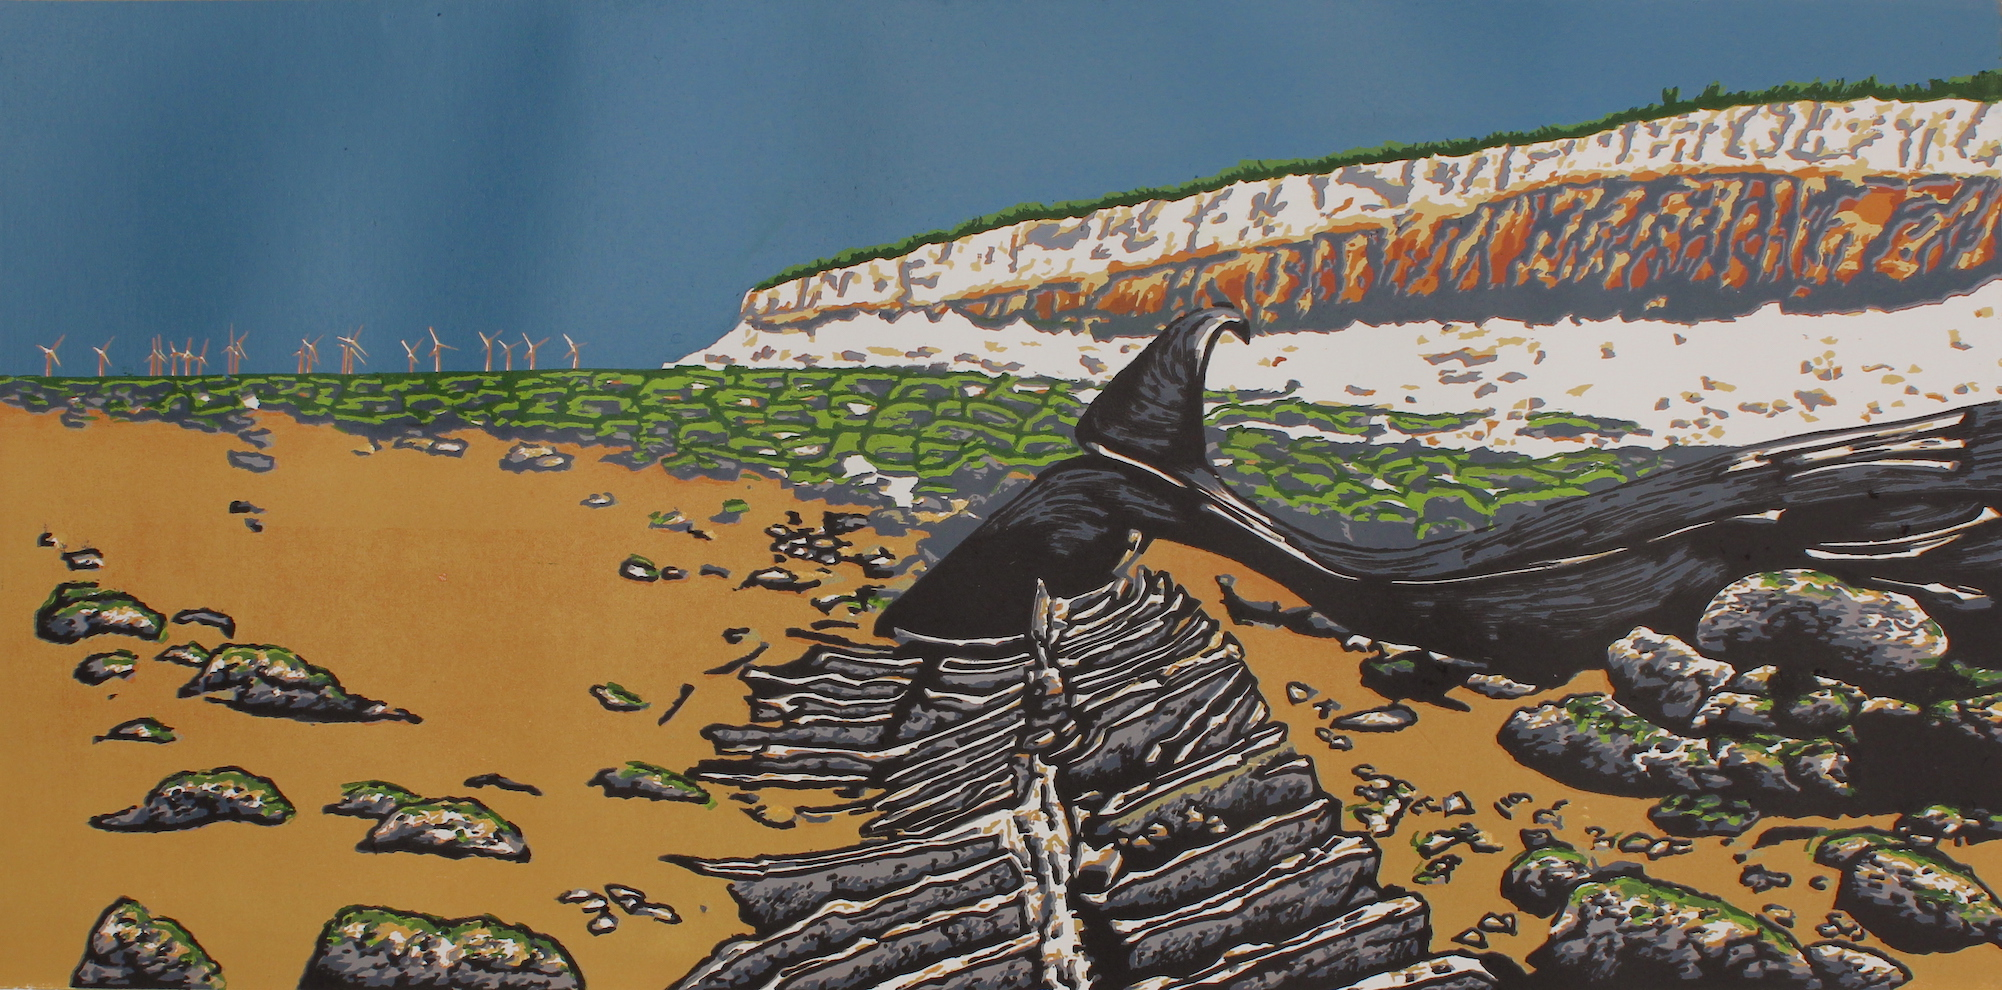 The Stranding  reduction  linocut   29 x 58.5cm image size  £24 unframed